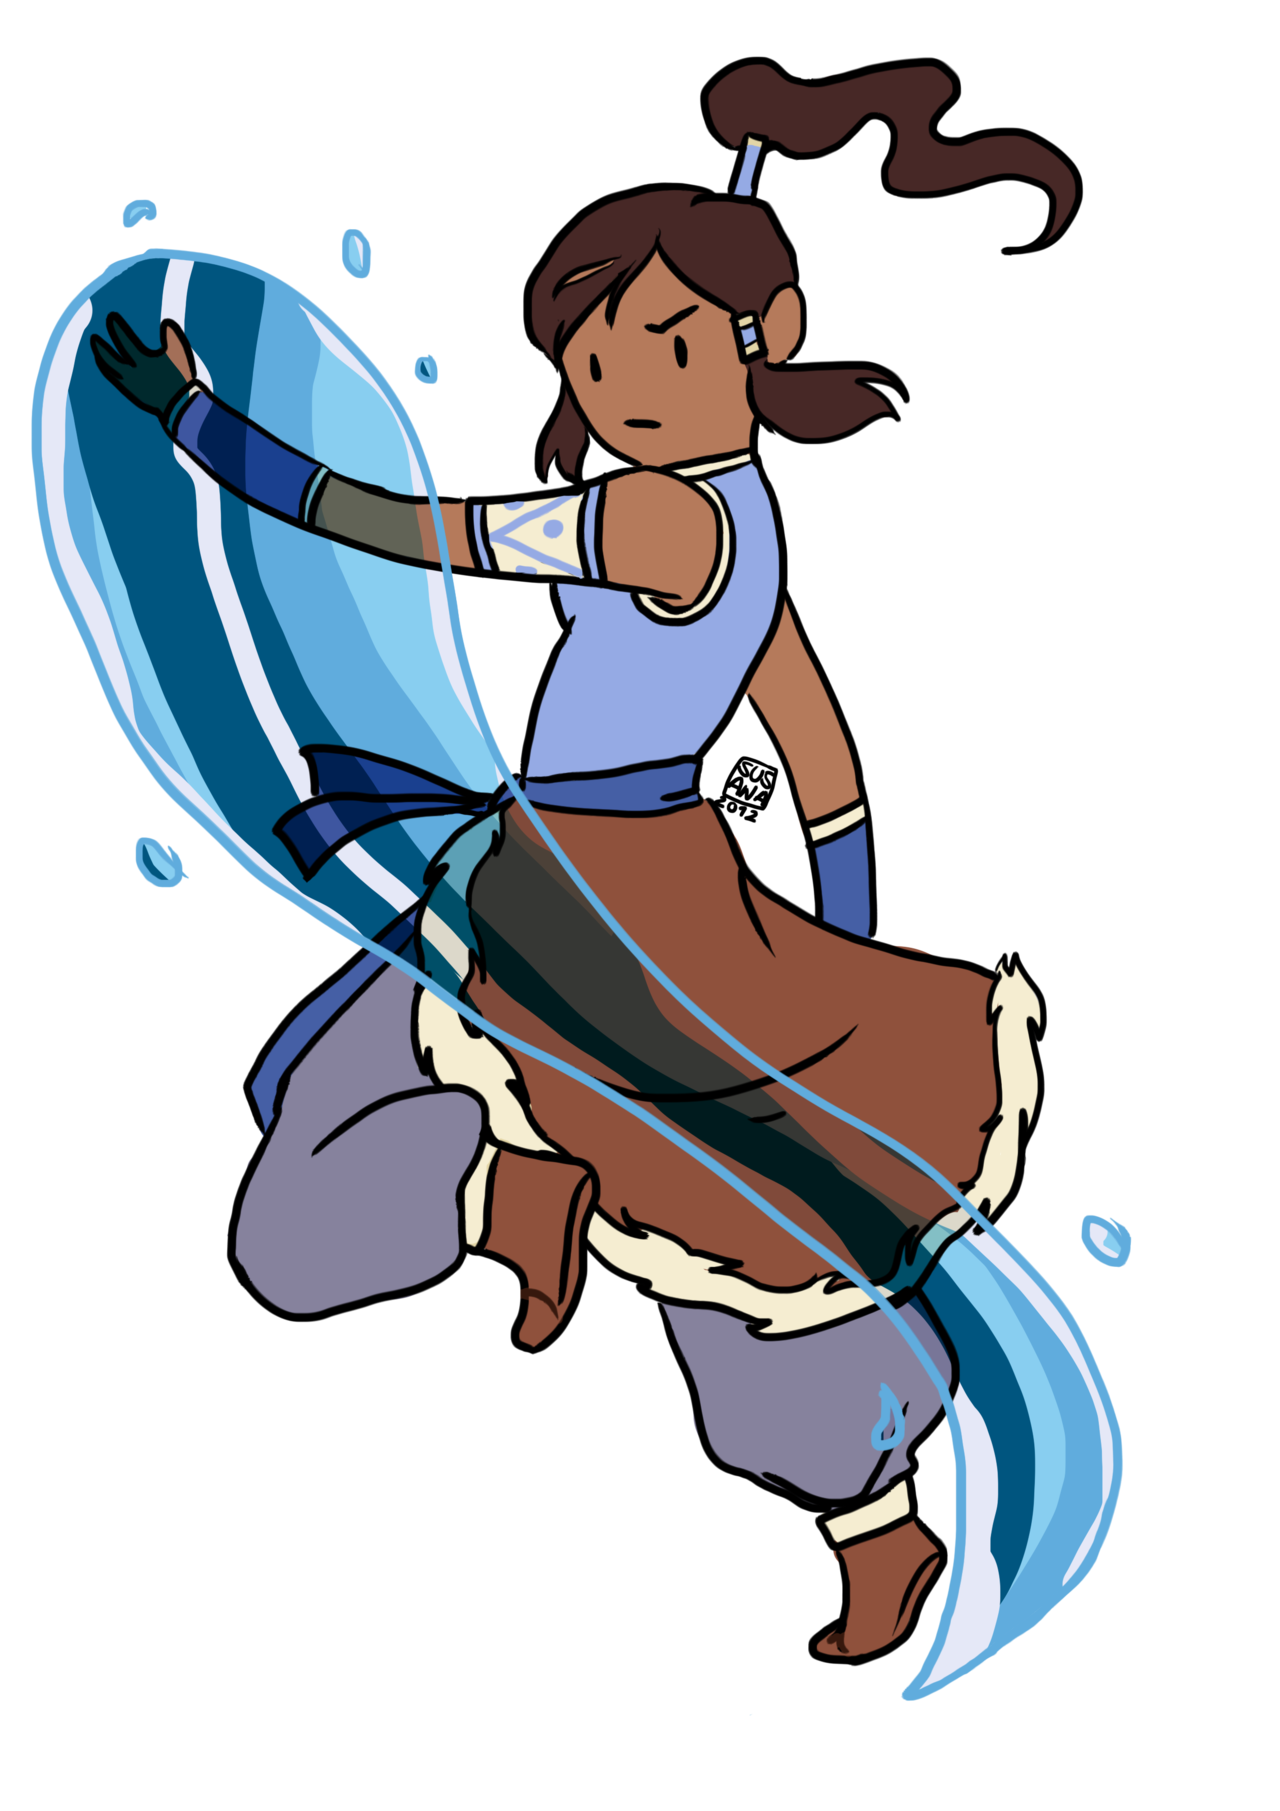 Booty transparent avatar the last airbender. Fire aang water earth